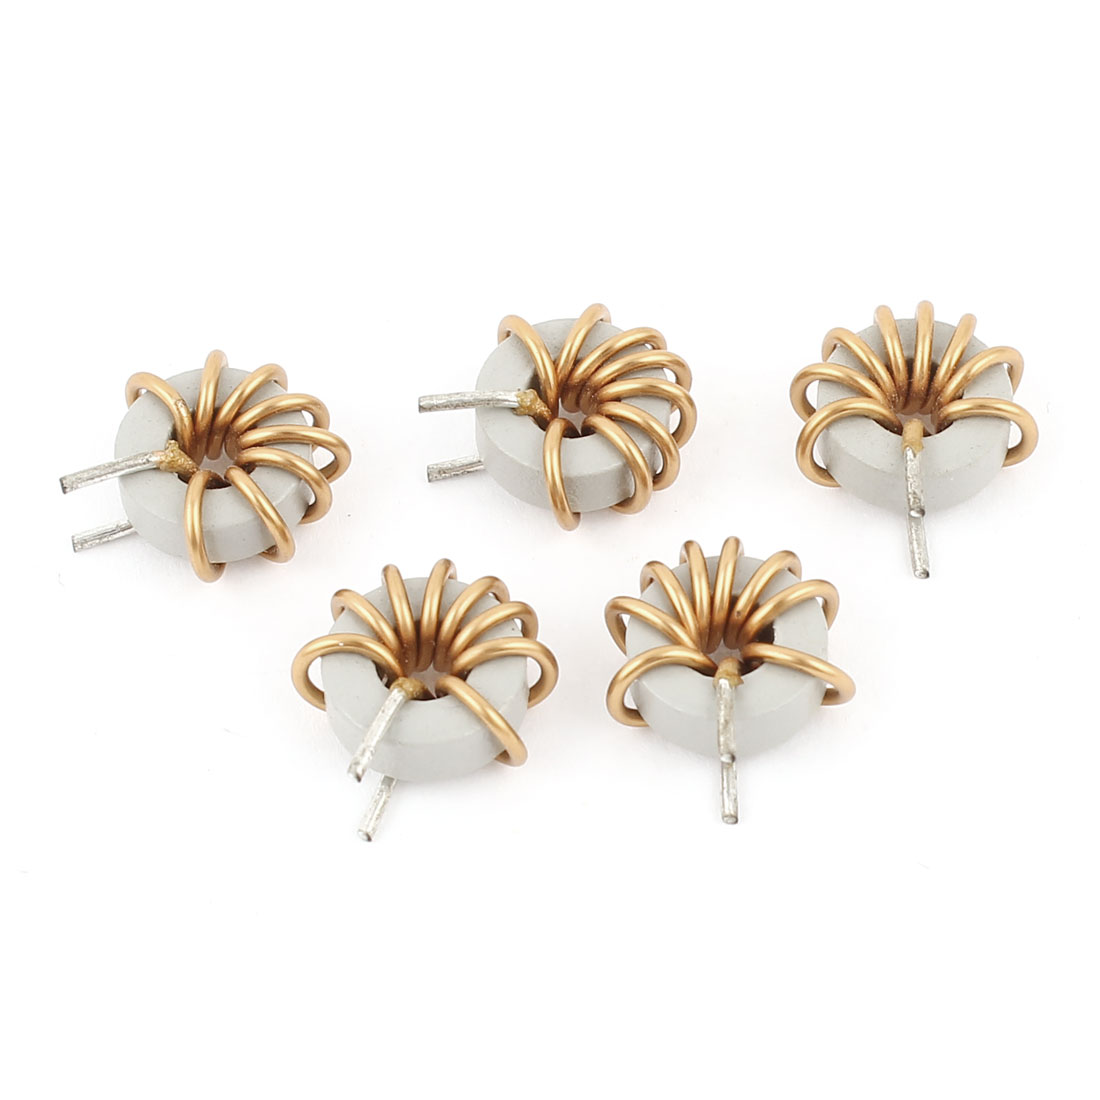 5 Pcs 1mm Dia Copper Wire Ferrite Core Toroid Toroidal Inductor 5.6uH Inductance